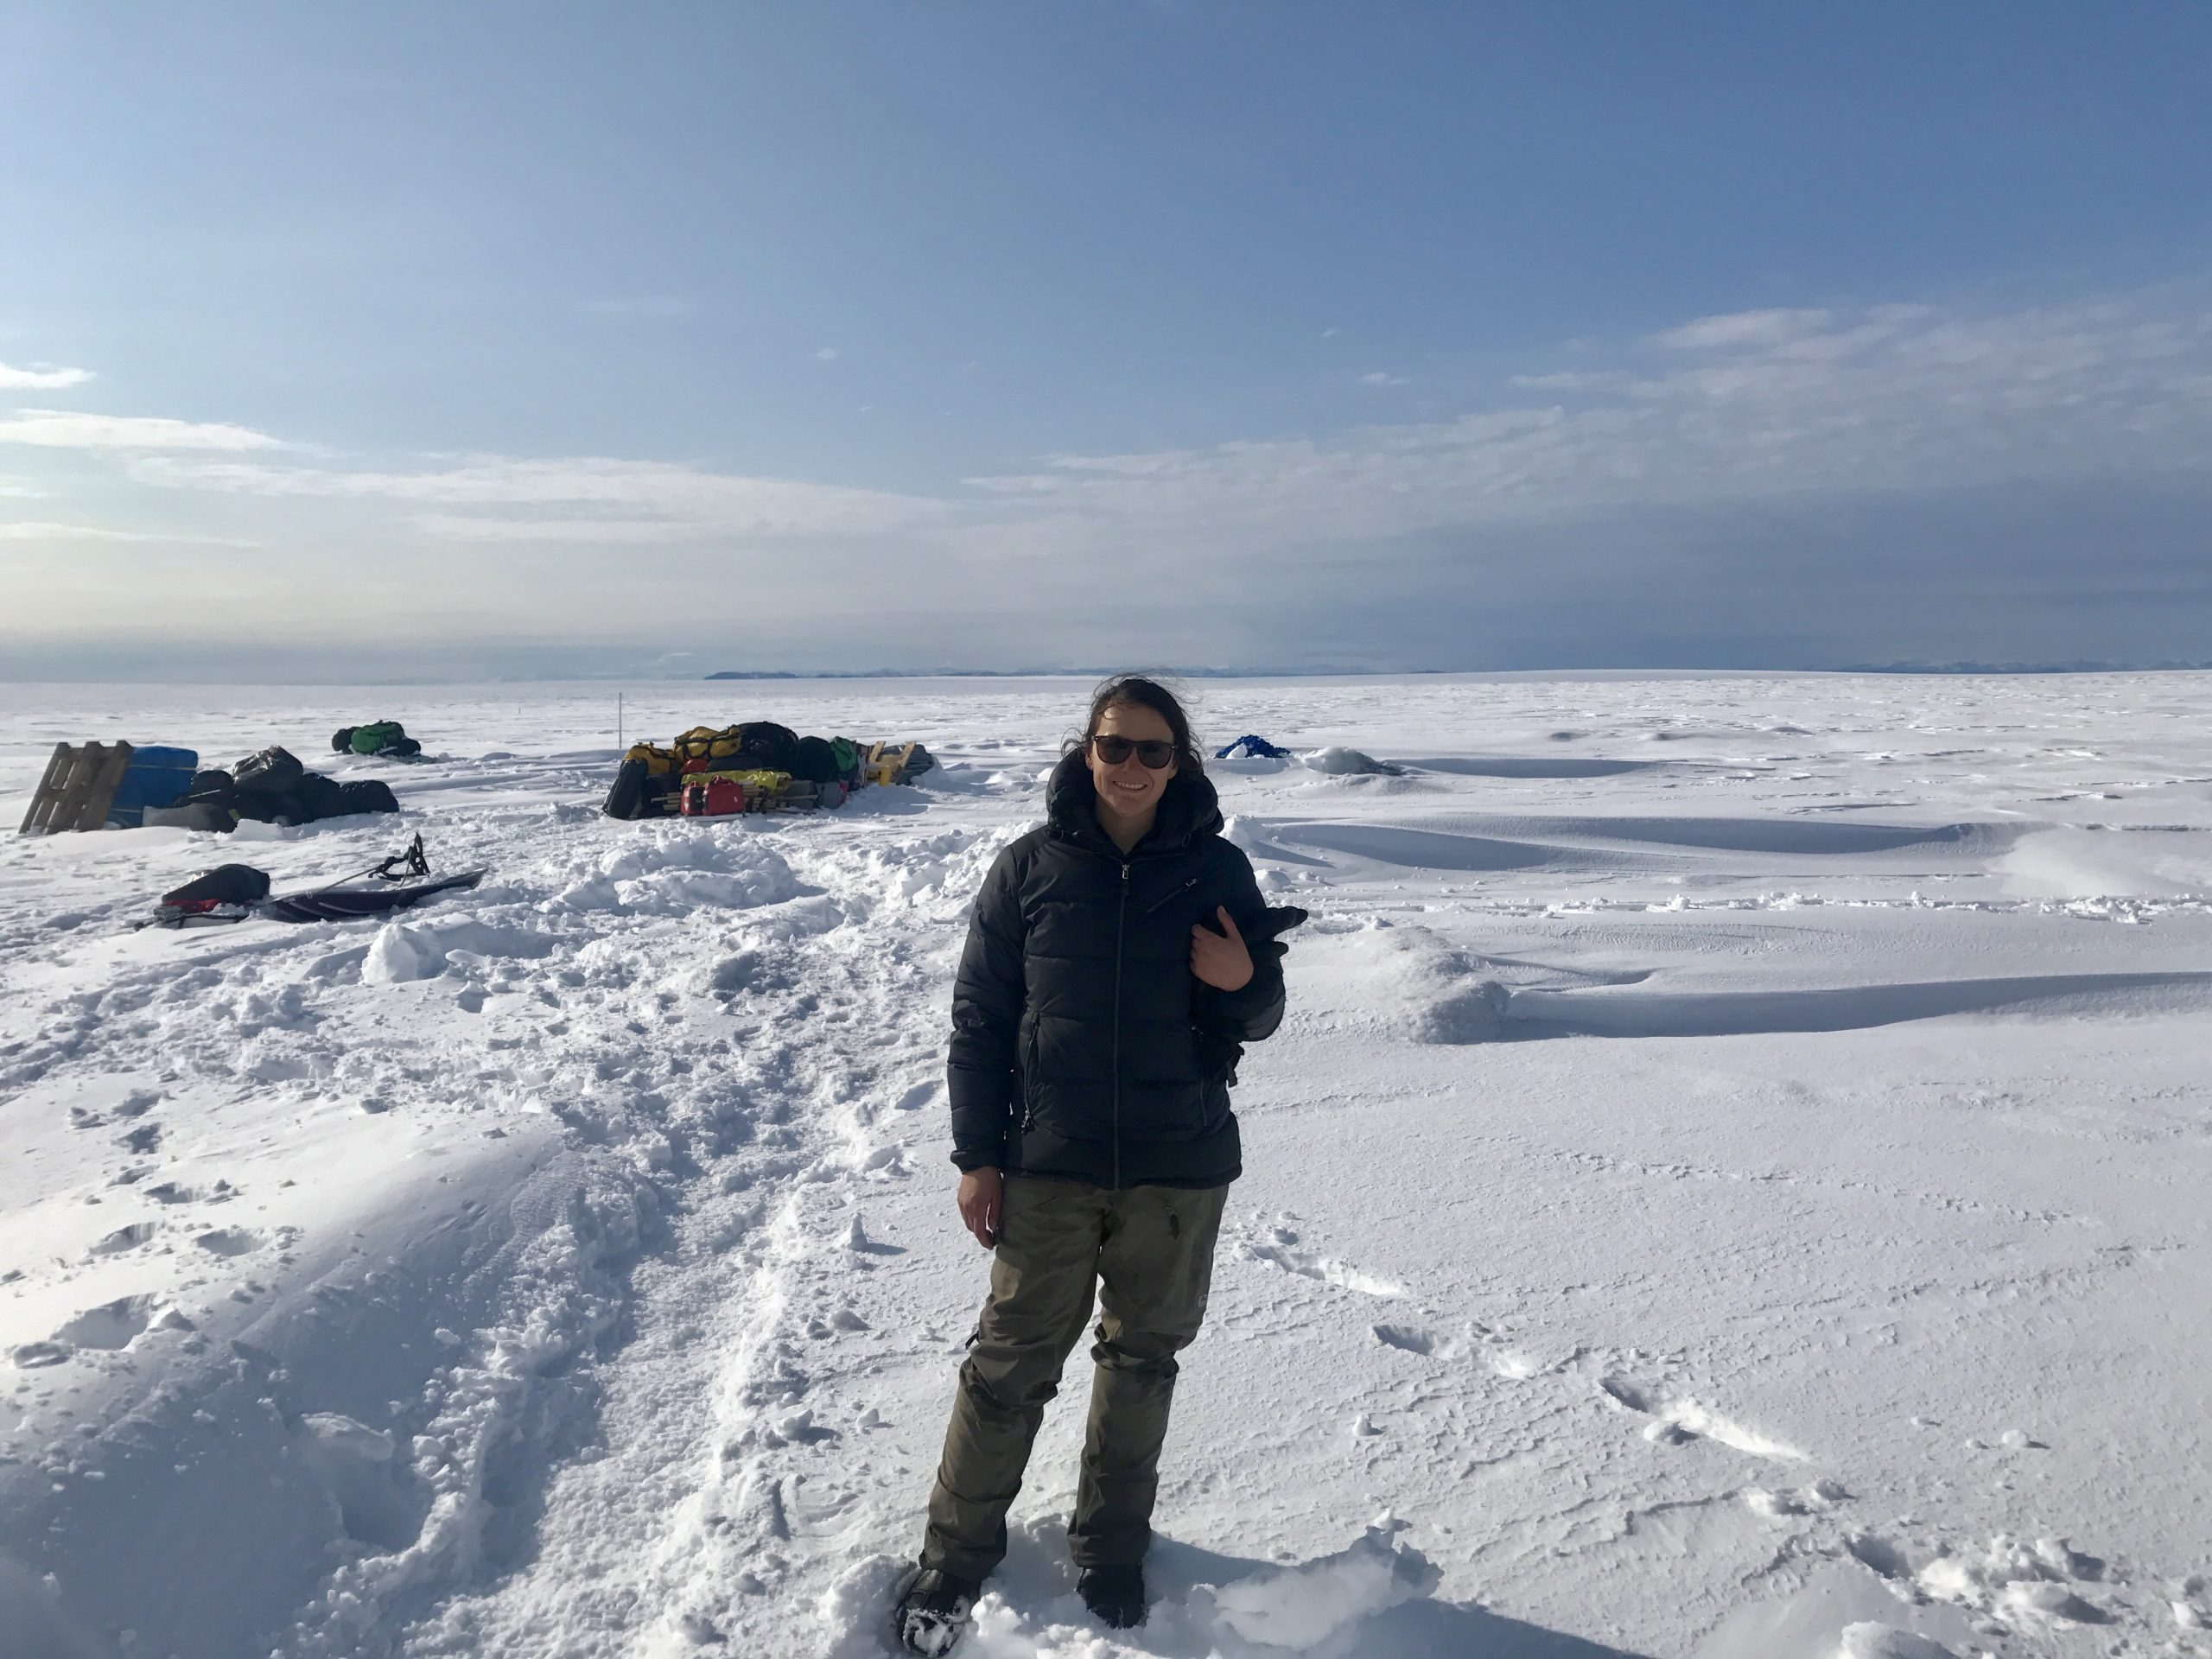 woman in a navy parka and tan snow pants standing on a a flat snow-covered surface (Greenland Ice Sheet) Blue sky with clouds in the distance